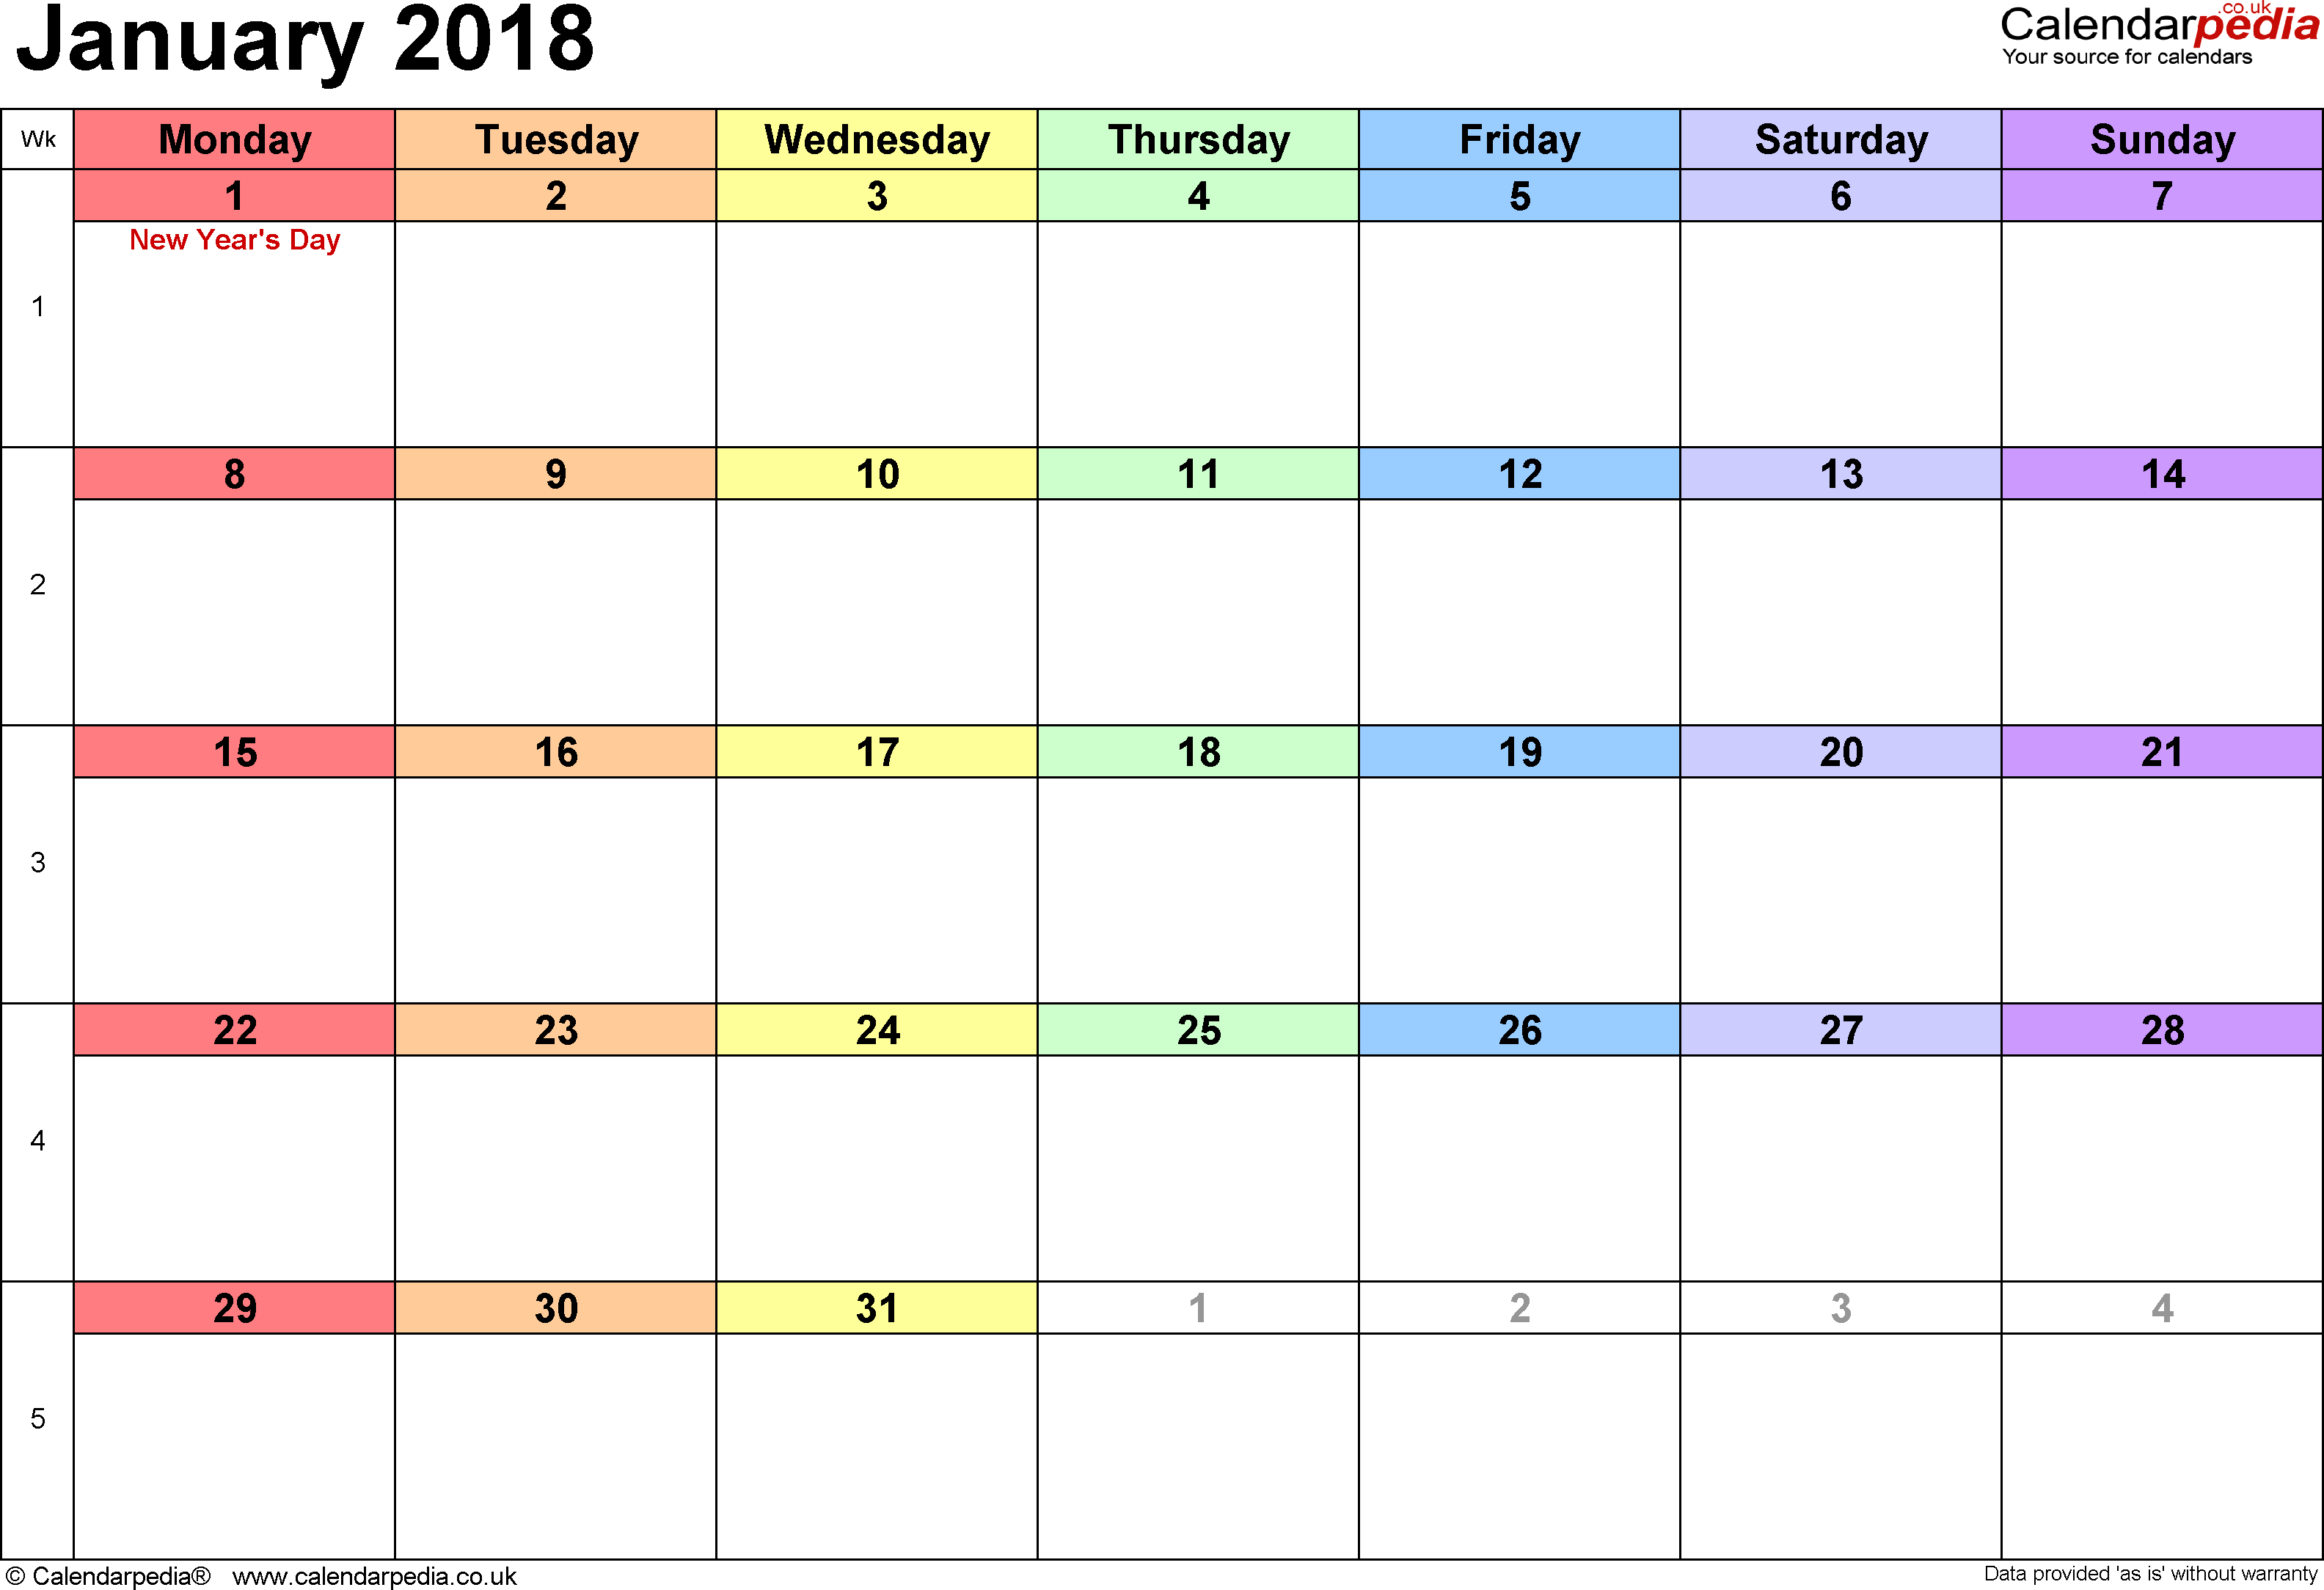 Calendar January 2018, landscape orientation, 1 page, with UK bank holidays and week numbers